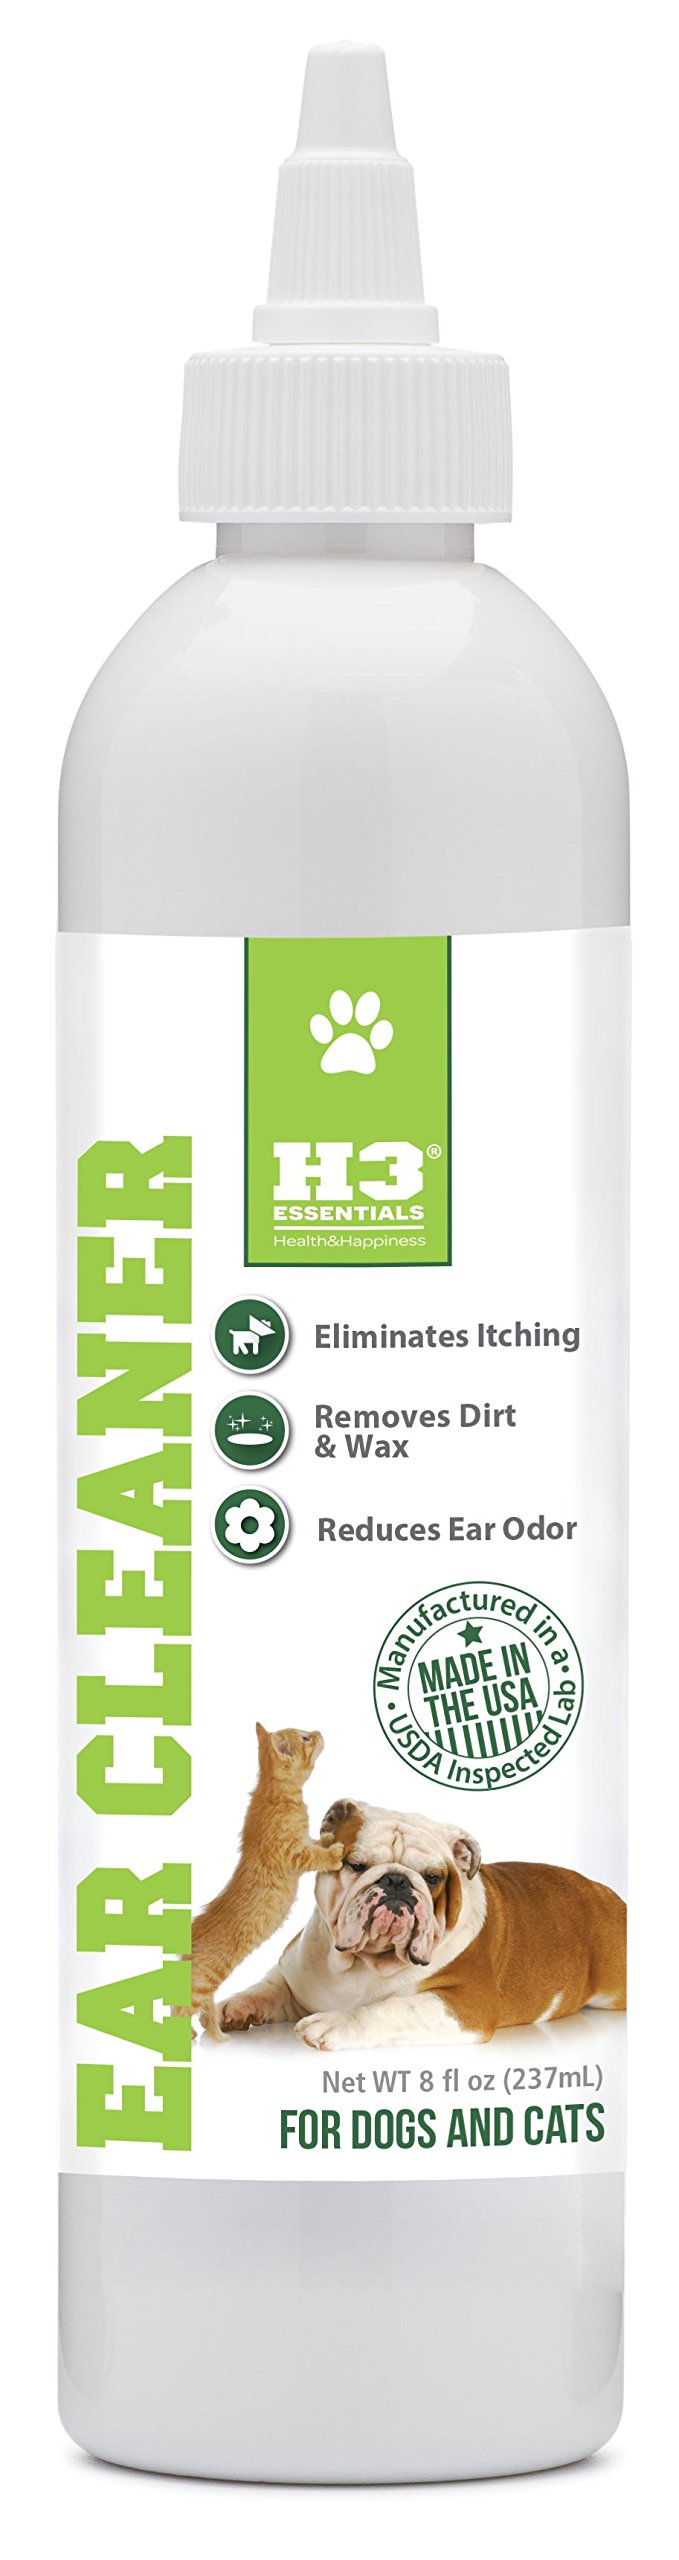 H3 Essentials Dog Ear Cleaner For Dogs and Cats with Aloe - Prevents Infection, Cleans and Dries Pets Ears - 8 oz by H3 Essentials (Image #1)